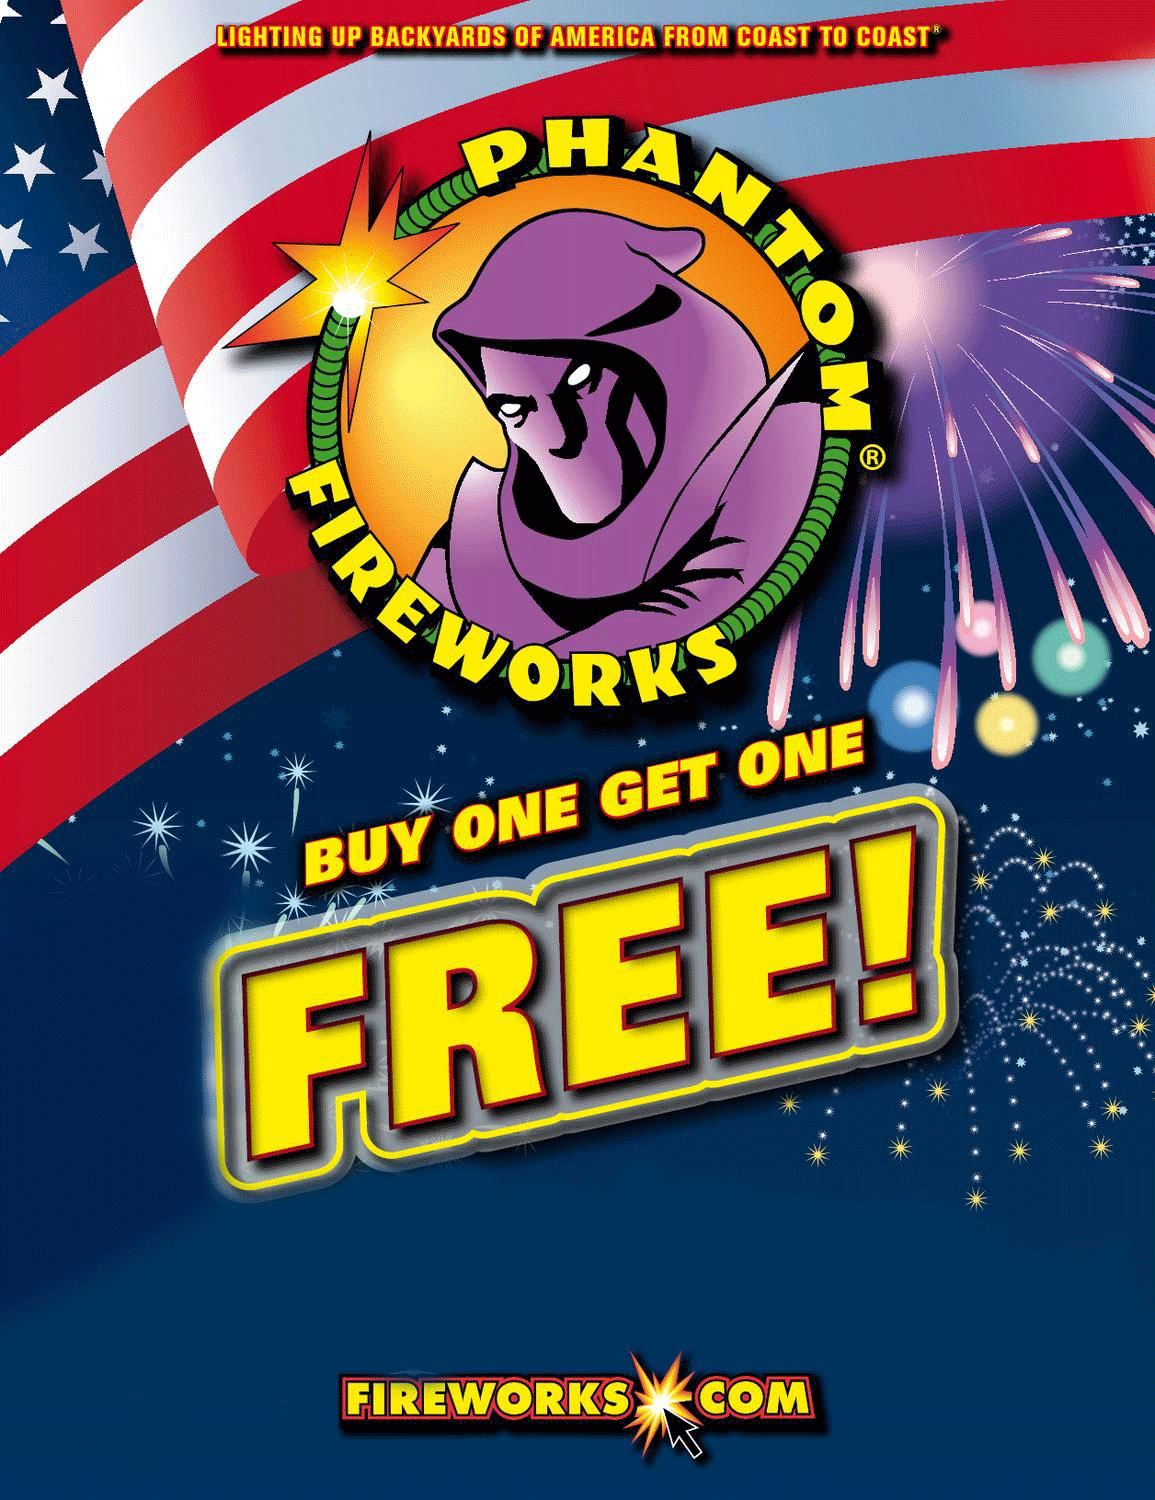 photo relating to Tnt Fireworks Coupons Printable titled Deals Phantom Fireworks